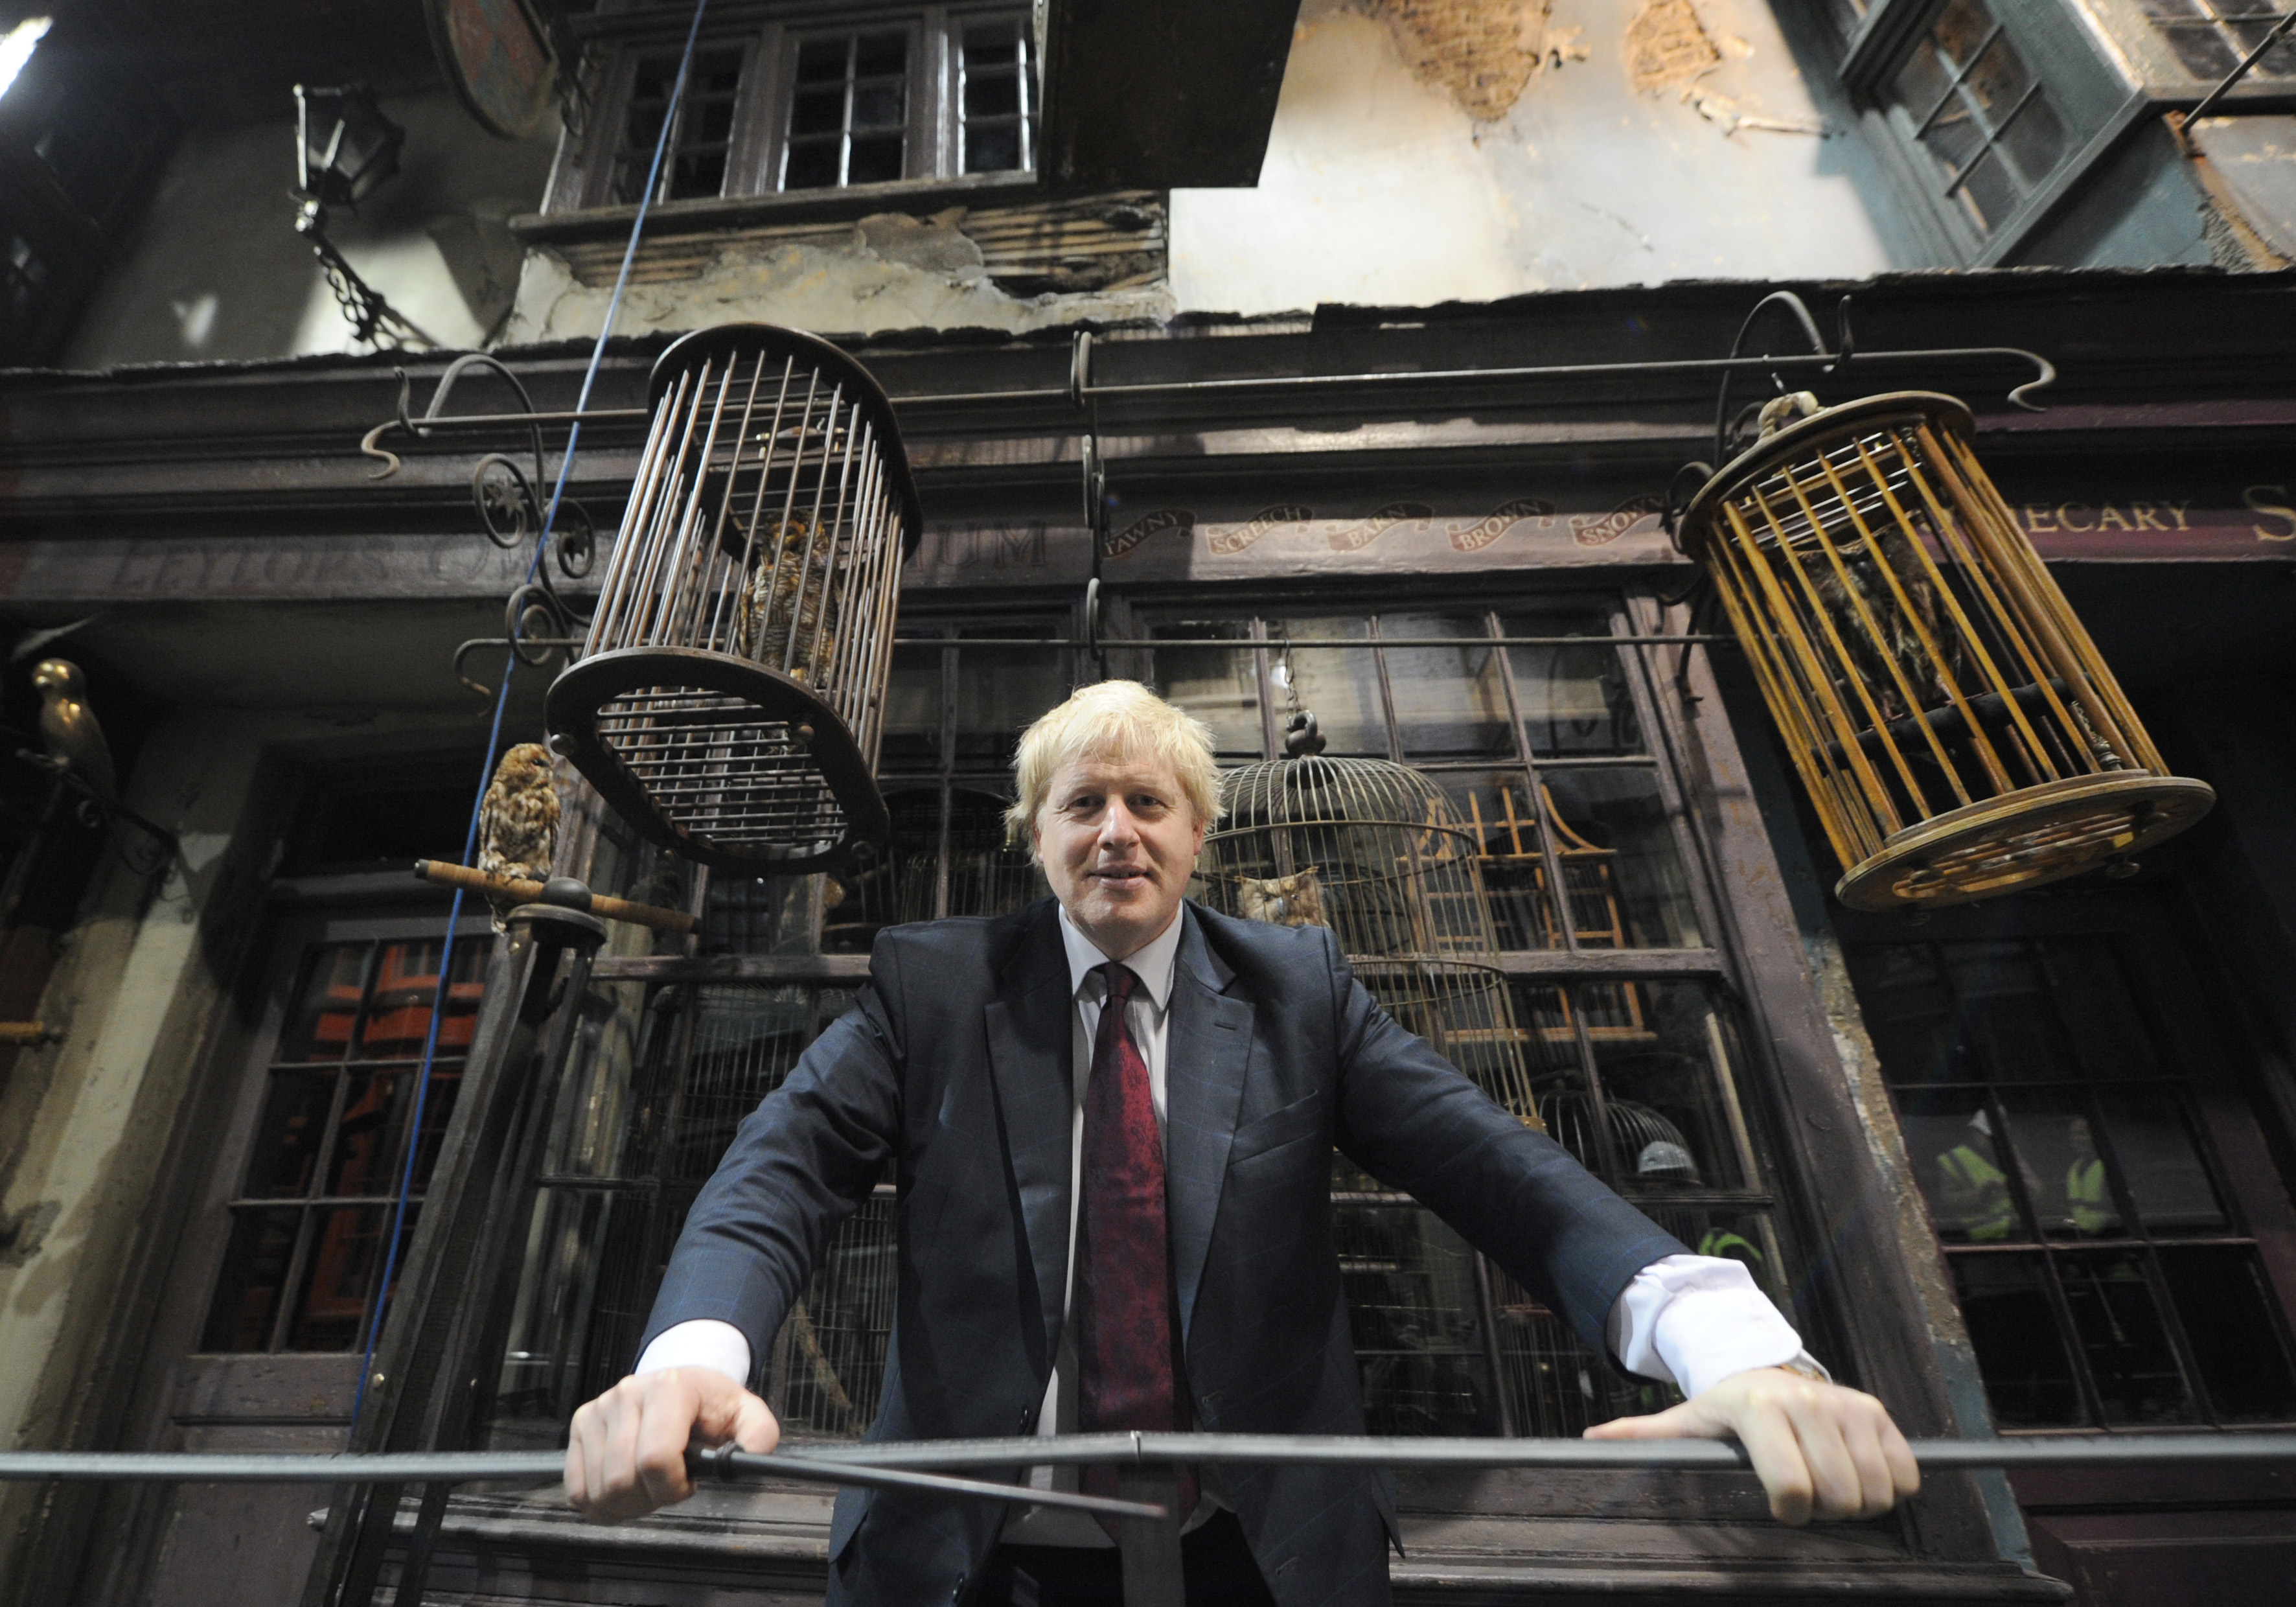 Mayor of London Boris Johnson poses in Diagon Alley as he visits the new attraction 'The Making of Harry Potter' at Warner Brothers studios in Leavesden, Hertfordshire. PRESS ASSOCIATION Photo Monday December 19, 2011. Photo credit should read: Anthony Devlin/PA